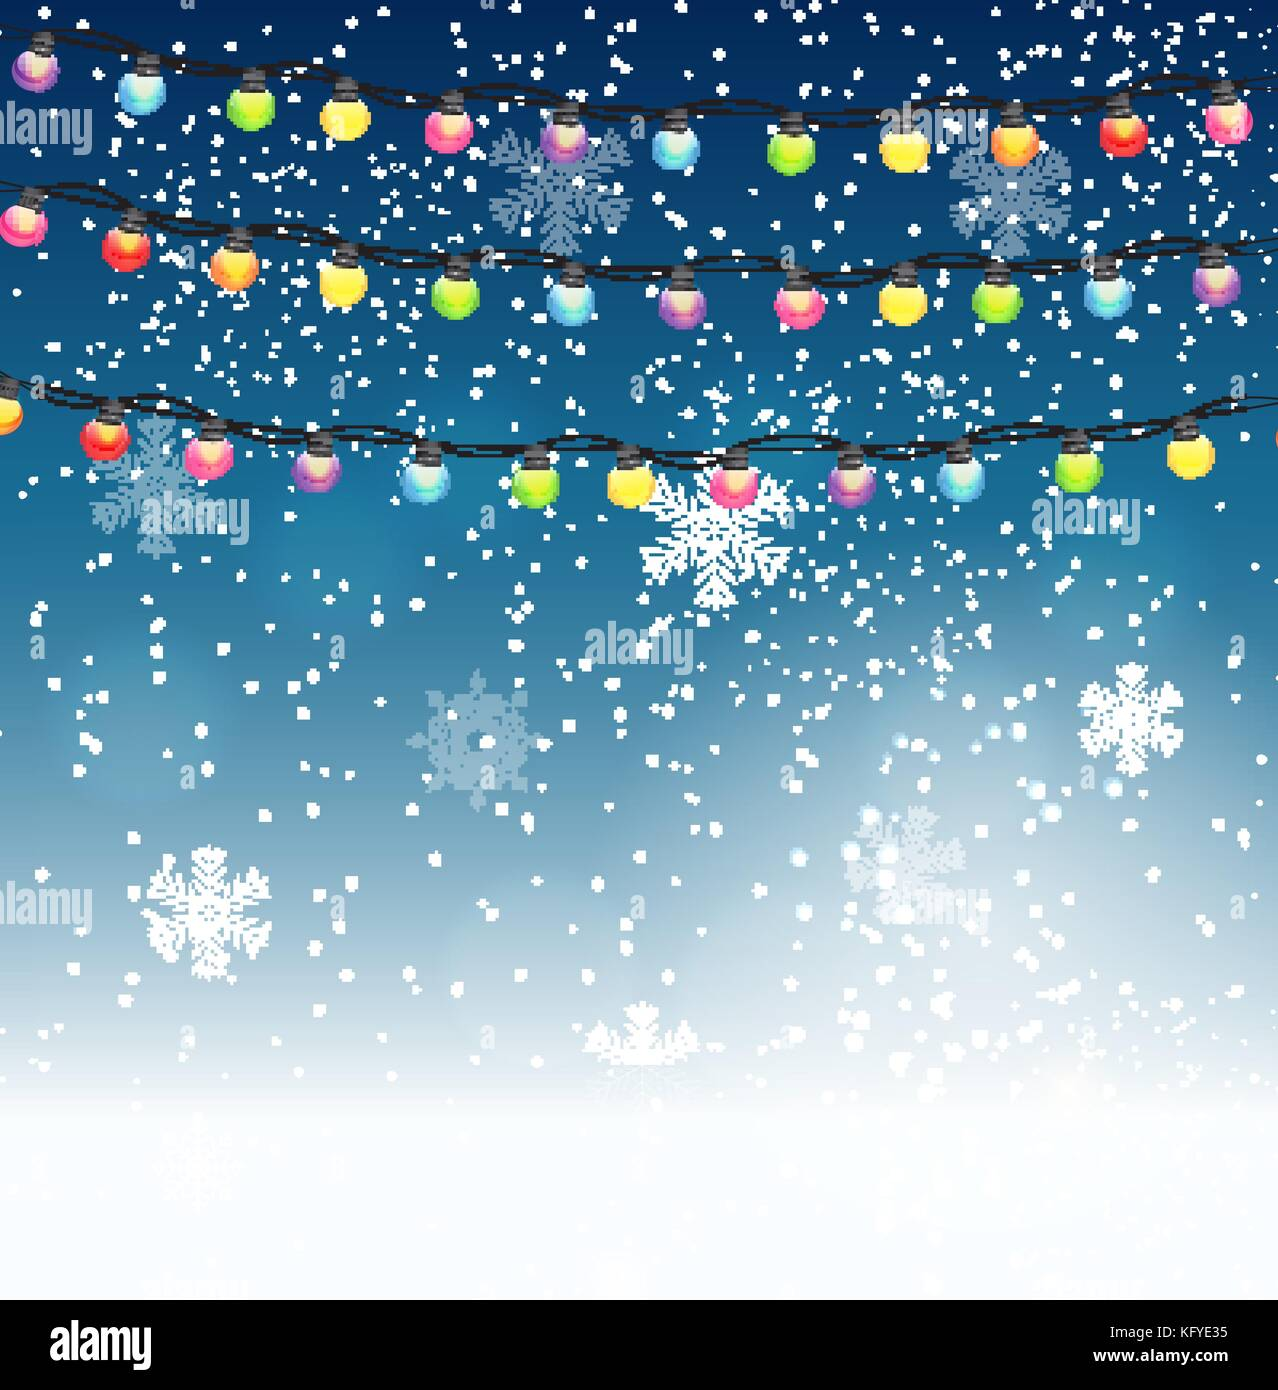 abstract beauty christmas and new year background with garland bulb lights and falling snow vector illustration